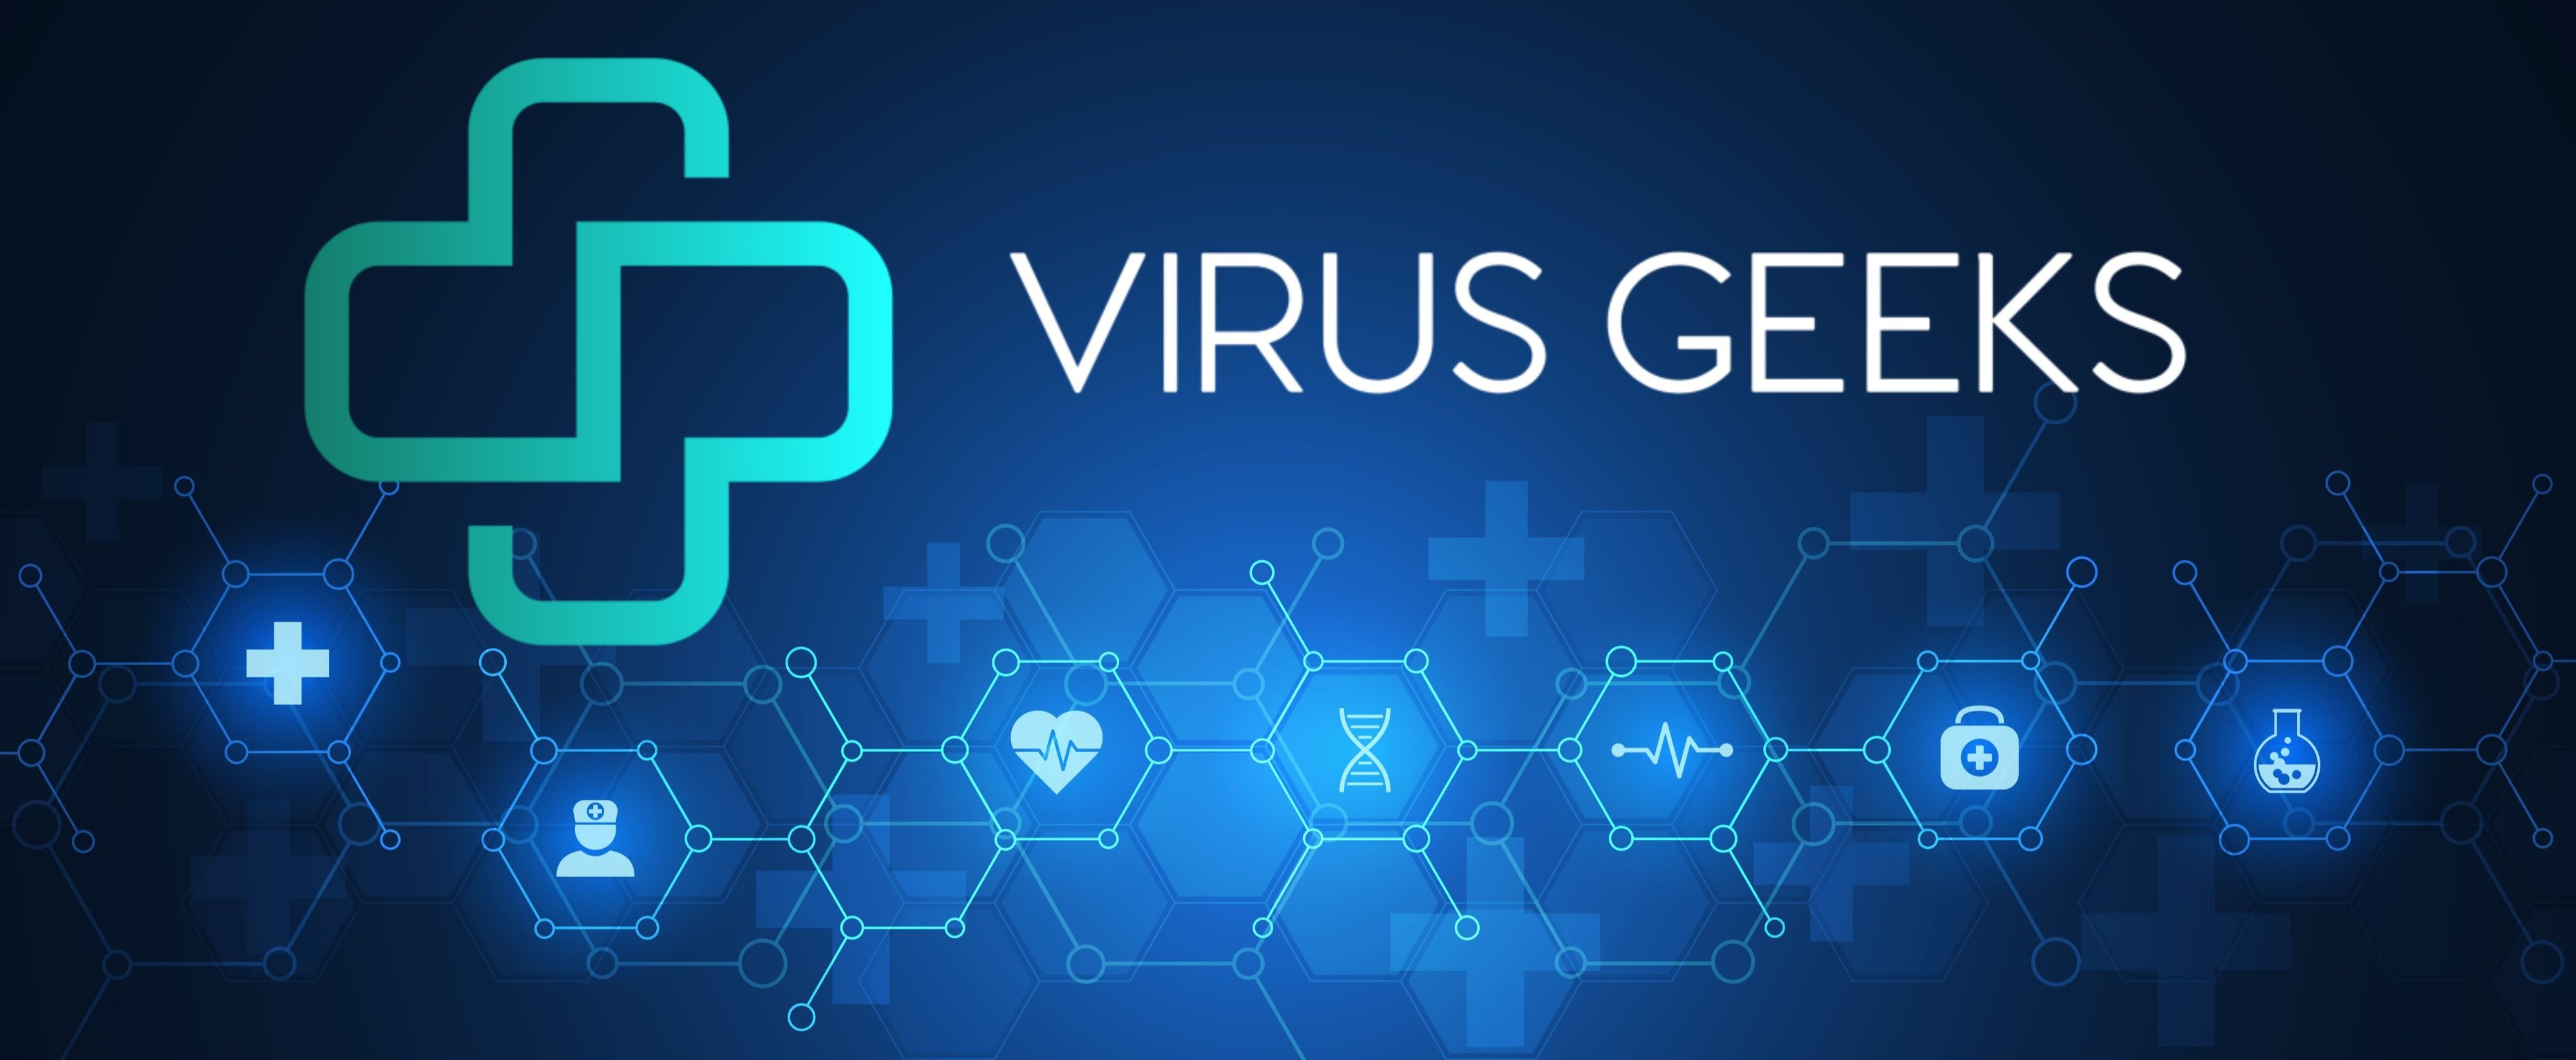 https://growthzonesitesprod.azureedge.net/wp-content/uploads/sites/731/2021/03/Logos_virus-geeks-disinfection-1.jpg